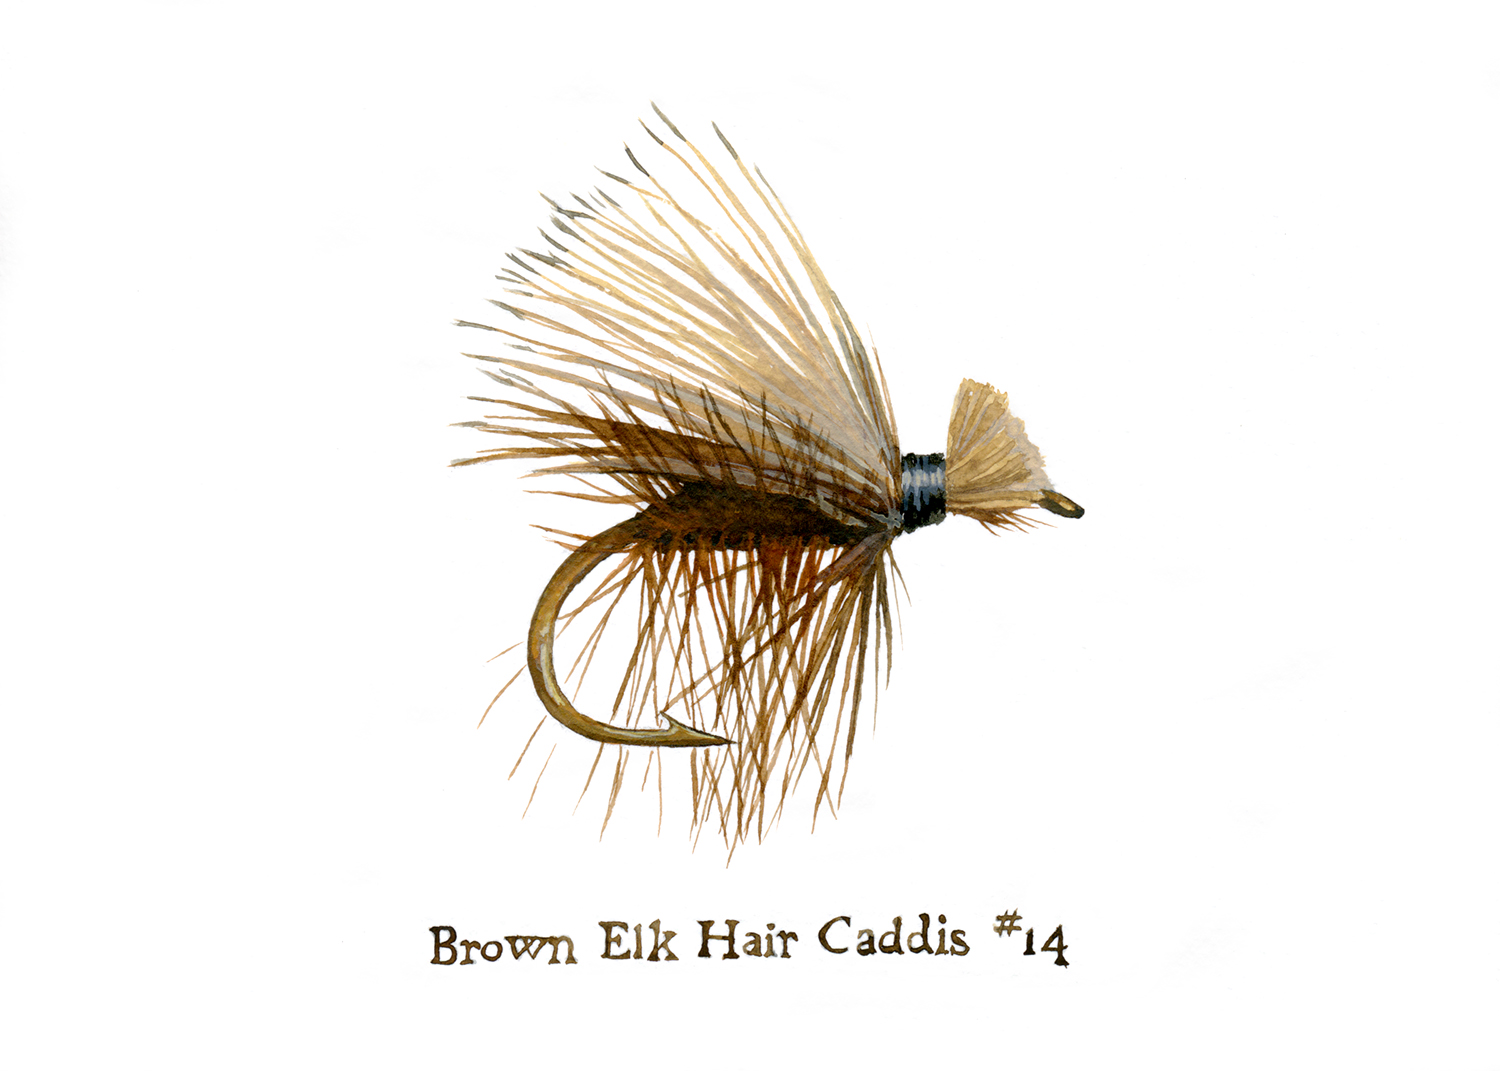 Brown Elk Hair Caddis #14